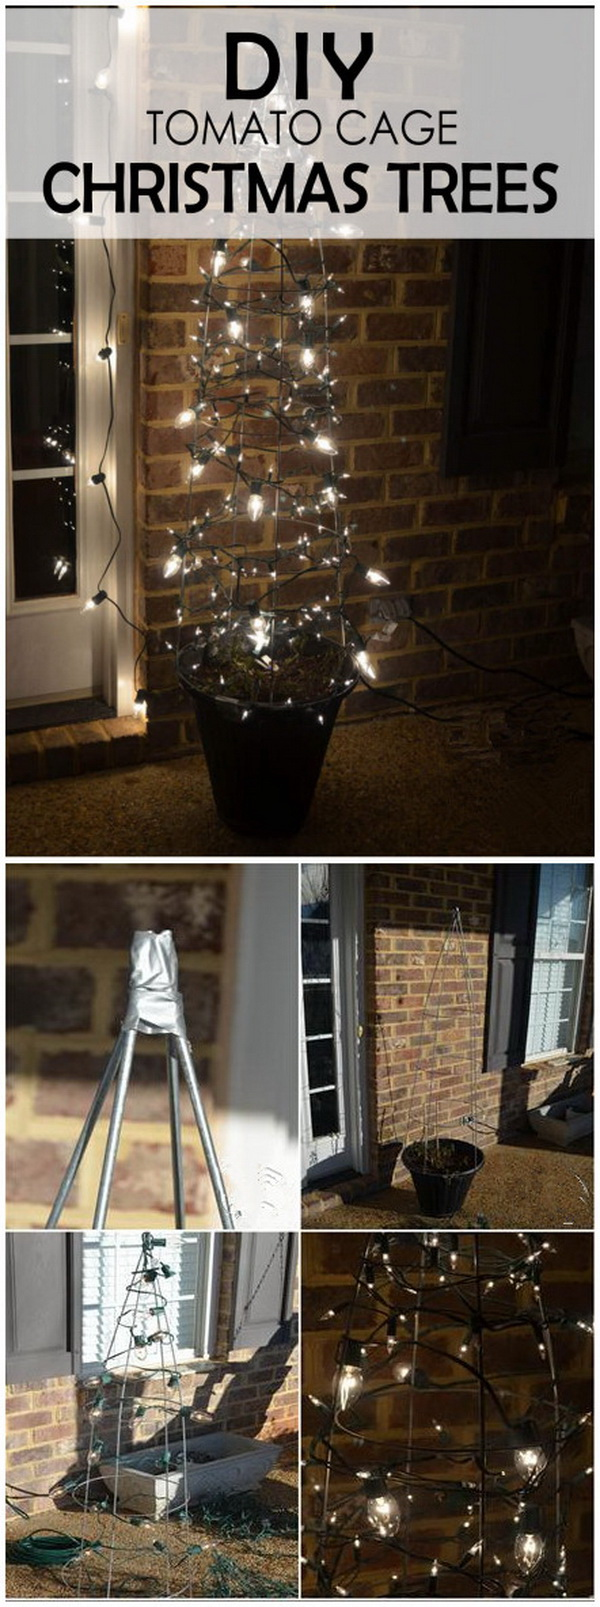 DIY Tomato Cage Lighted Christmas Tree. Light your garden or front porch up with this bright tomato cage Christmas lighted tree and bring some budget bling to your holiday decoration!